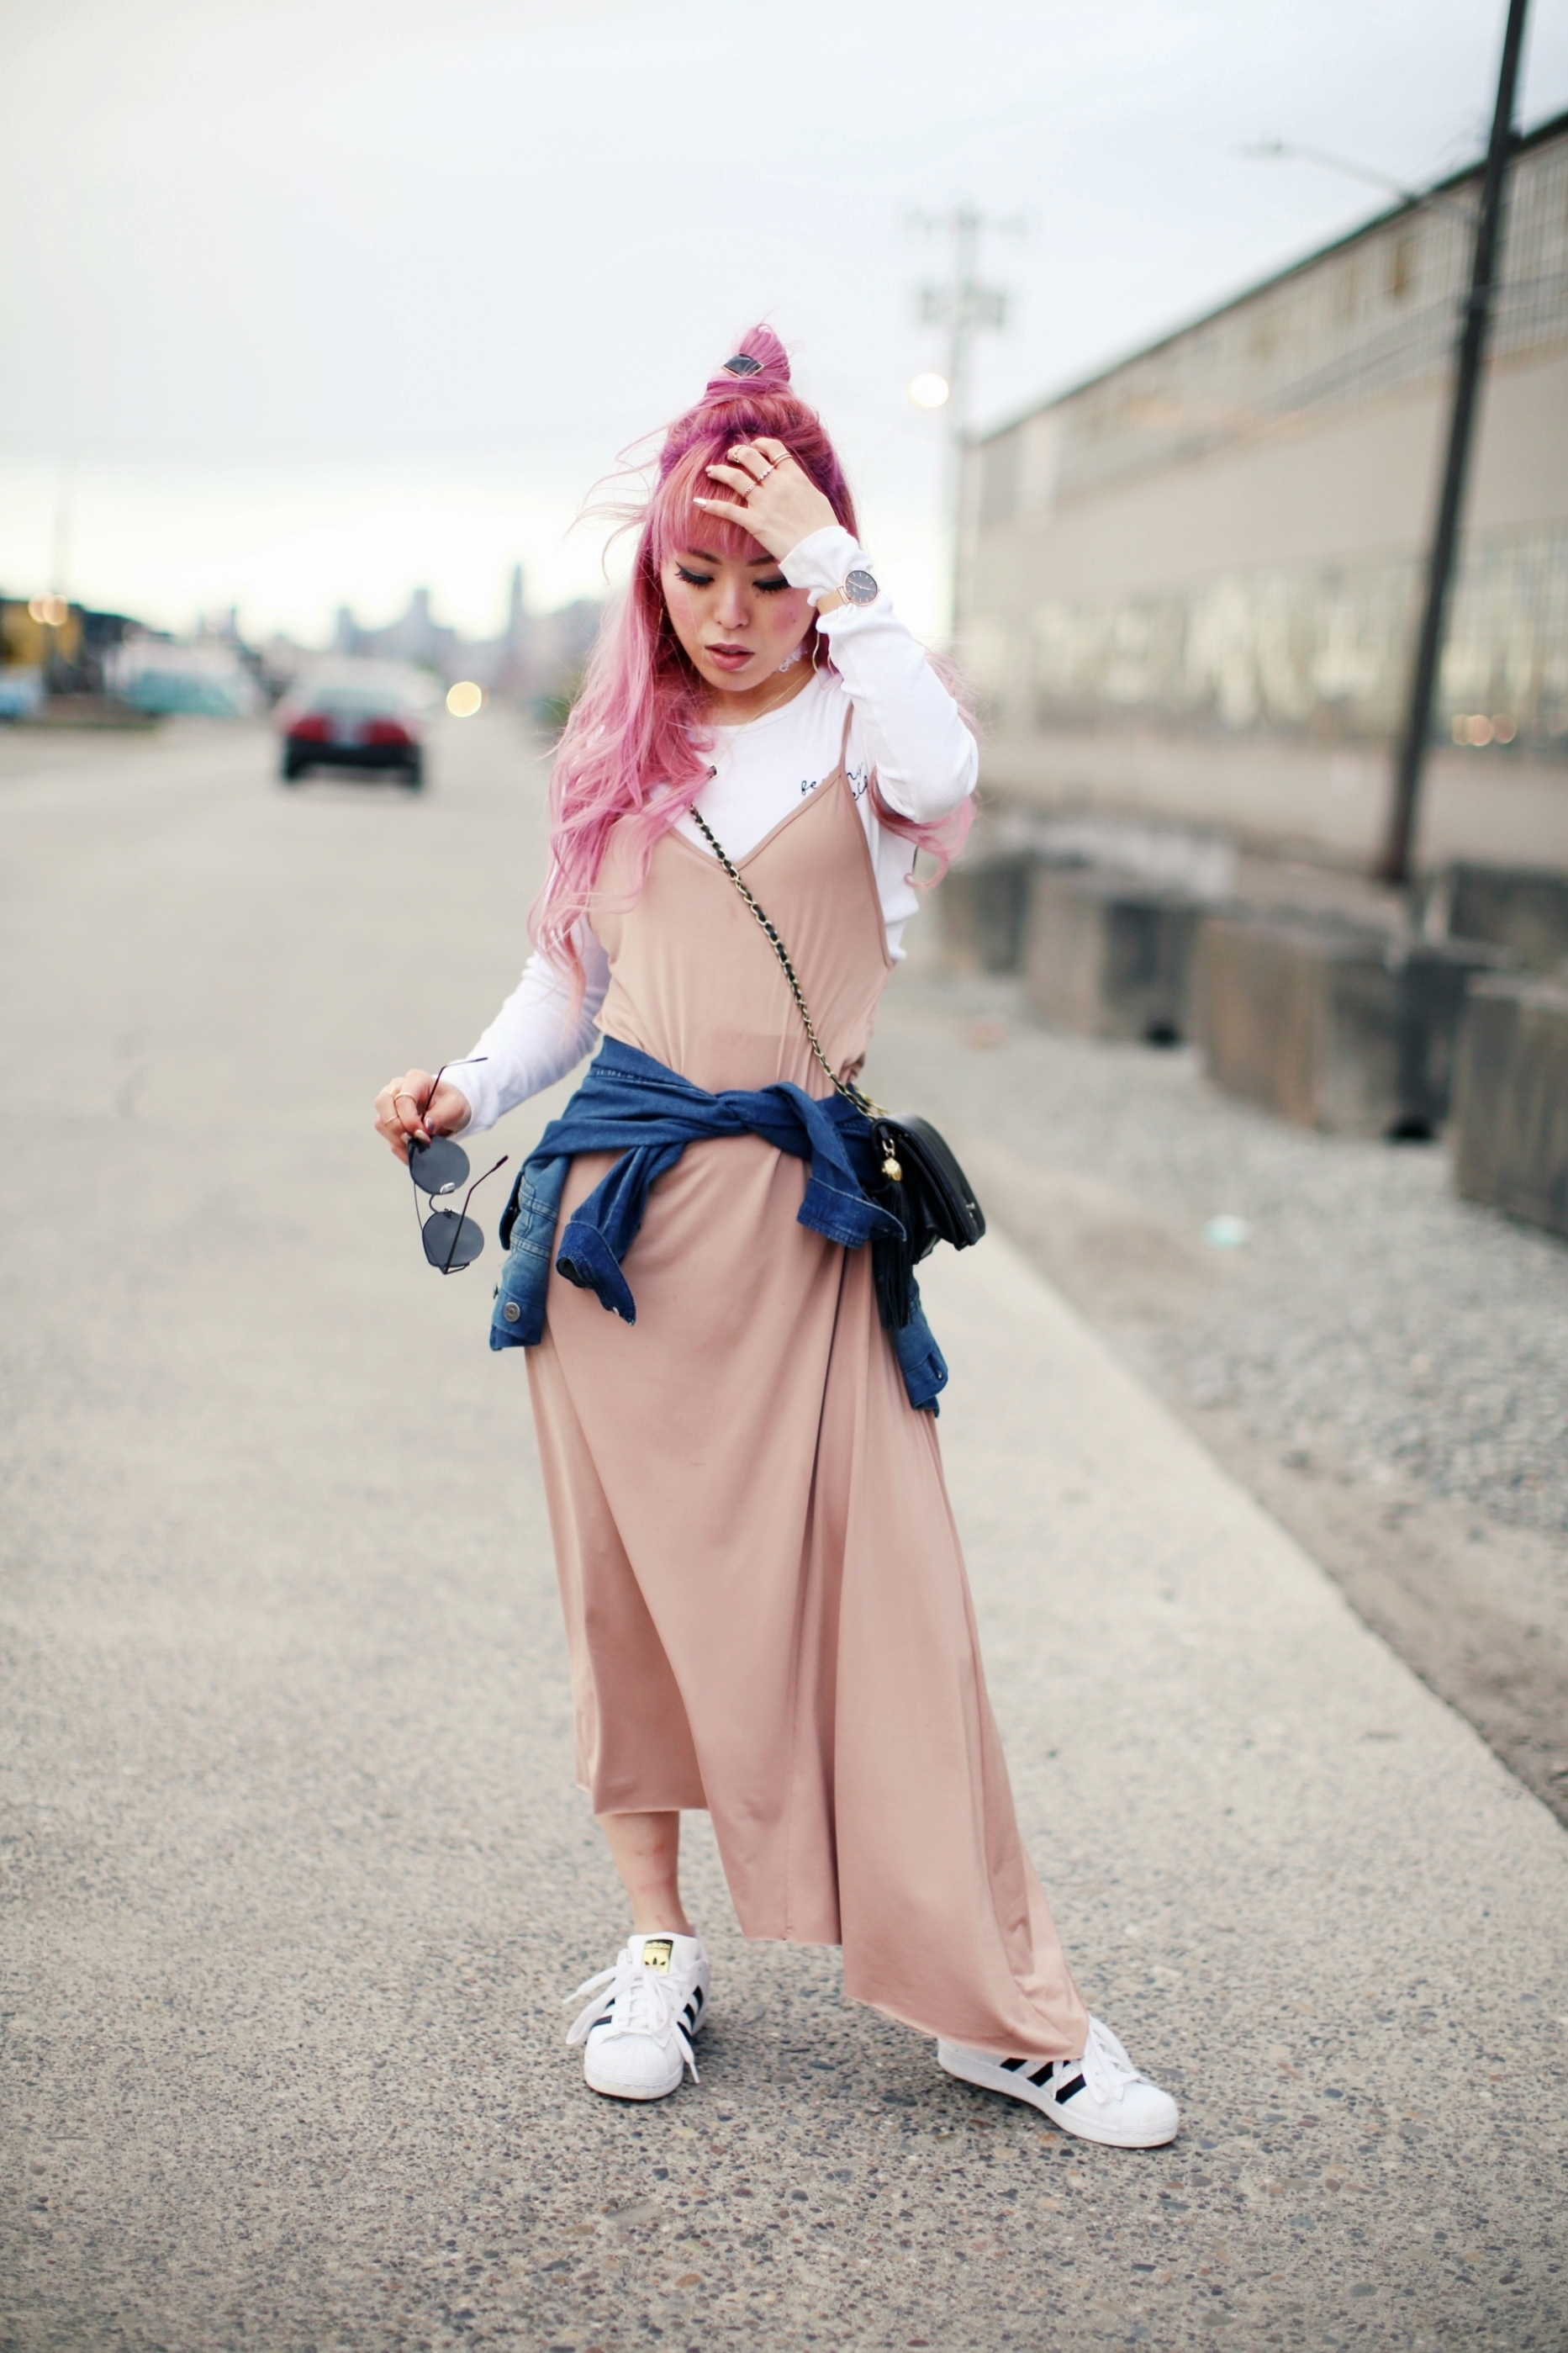 Forever 21 Long sleeve crop top_ZARA blush slip dress_Adidas Super Star sneakers_Vintage Chanel crossbodybag_Daniel Wellington Petite rose gold watch_Guess denim jacket_Aika's Love Closet_Seattle Fashion style blogger_Japanese_pink hair_Topknot hair 3